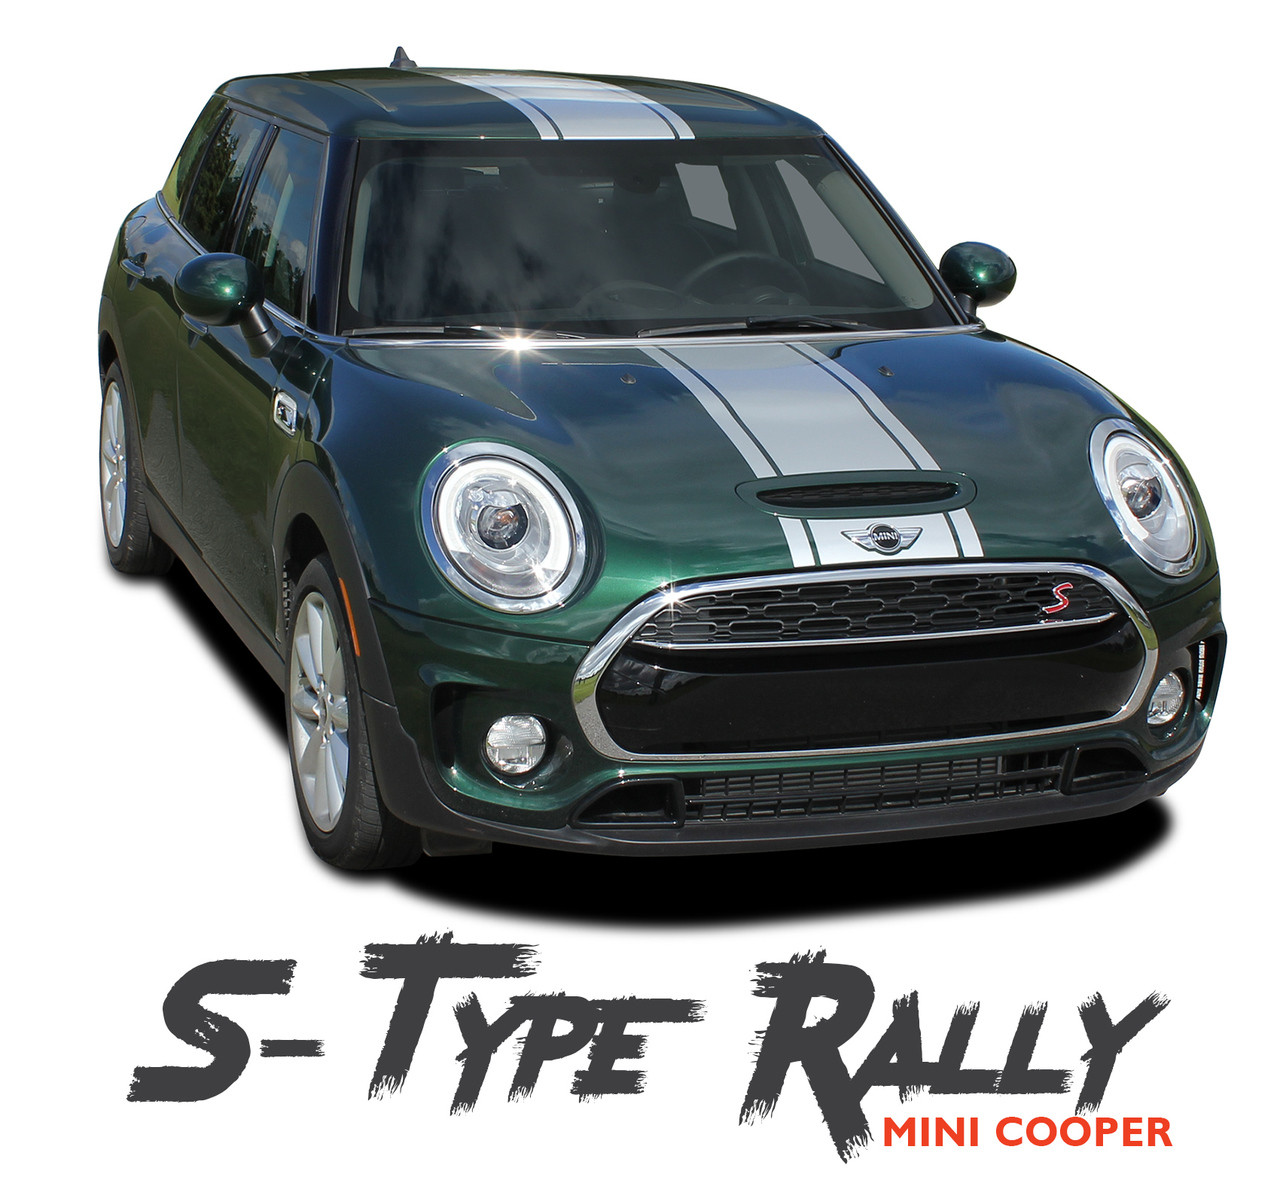 Mini Cooper Hood Stripes Vinyl Graphics Decals S Type Rally 2016 2018